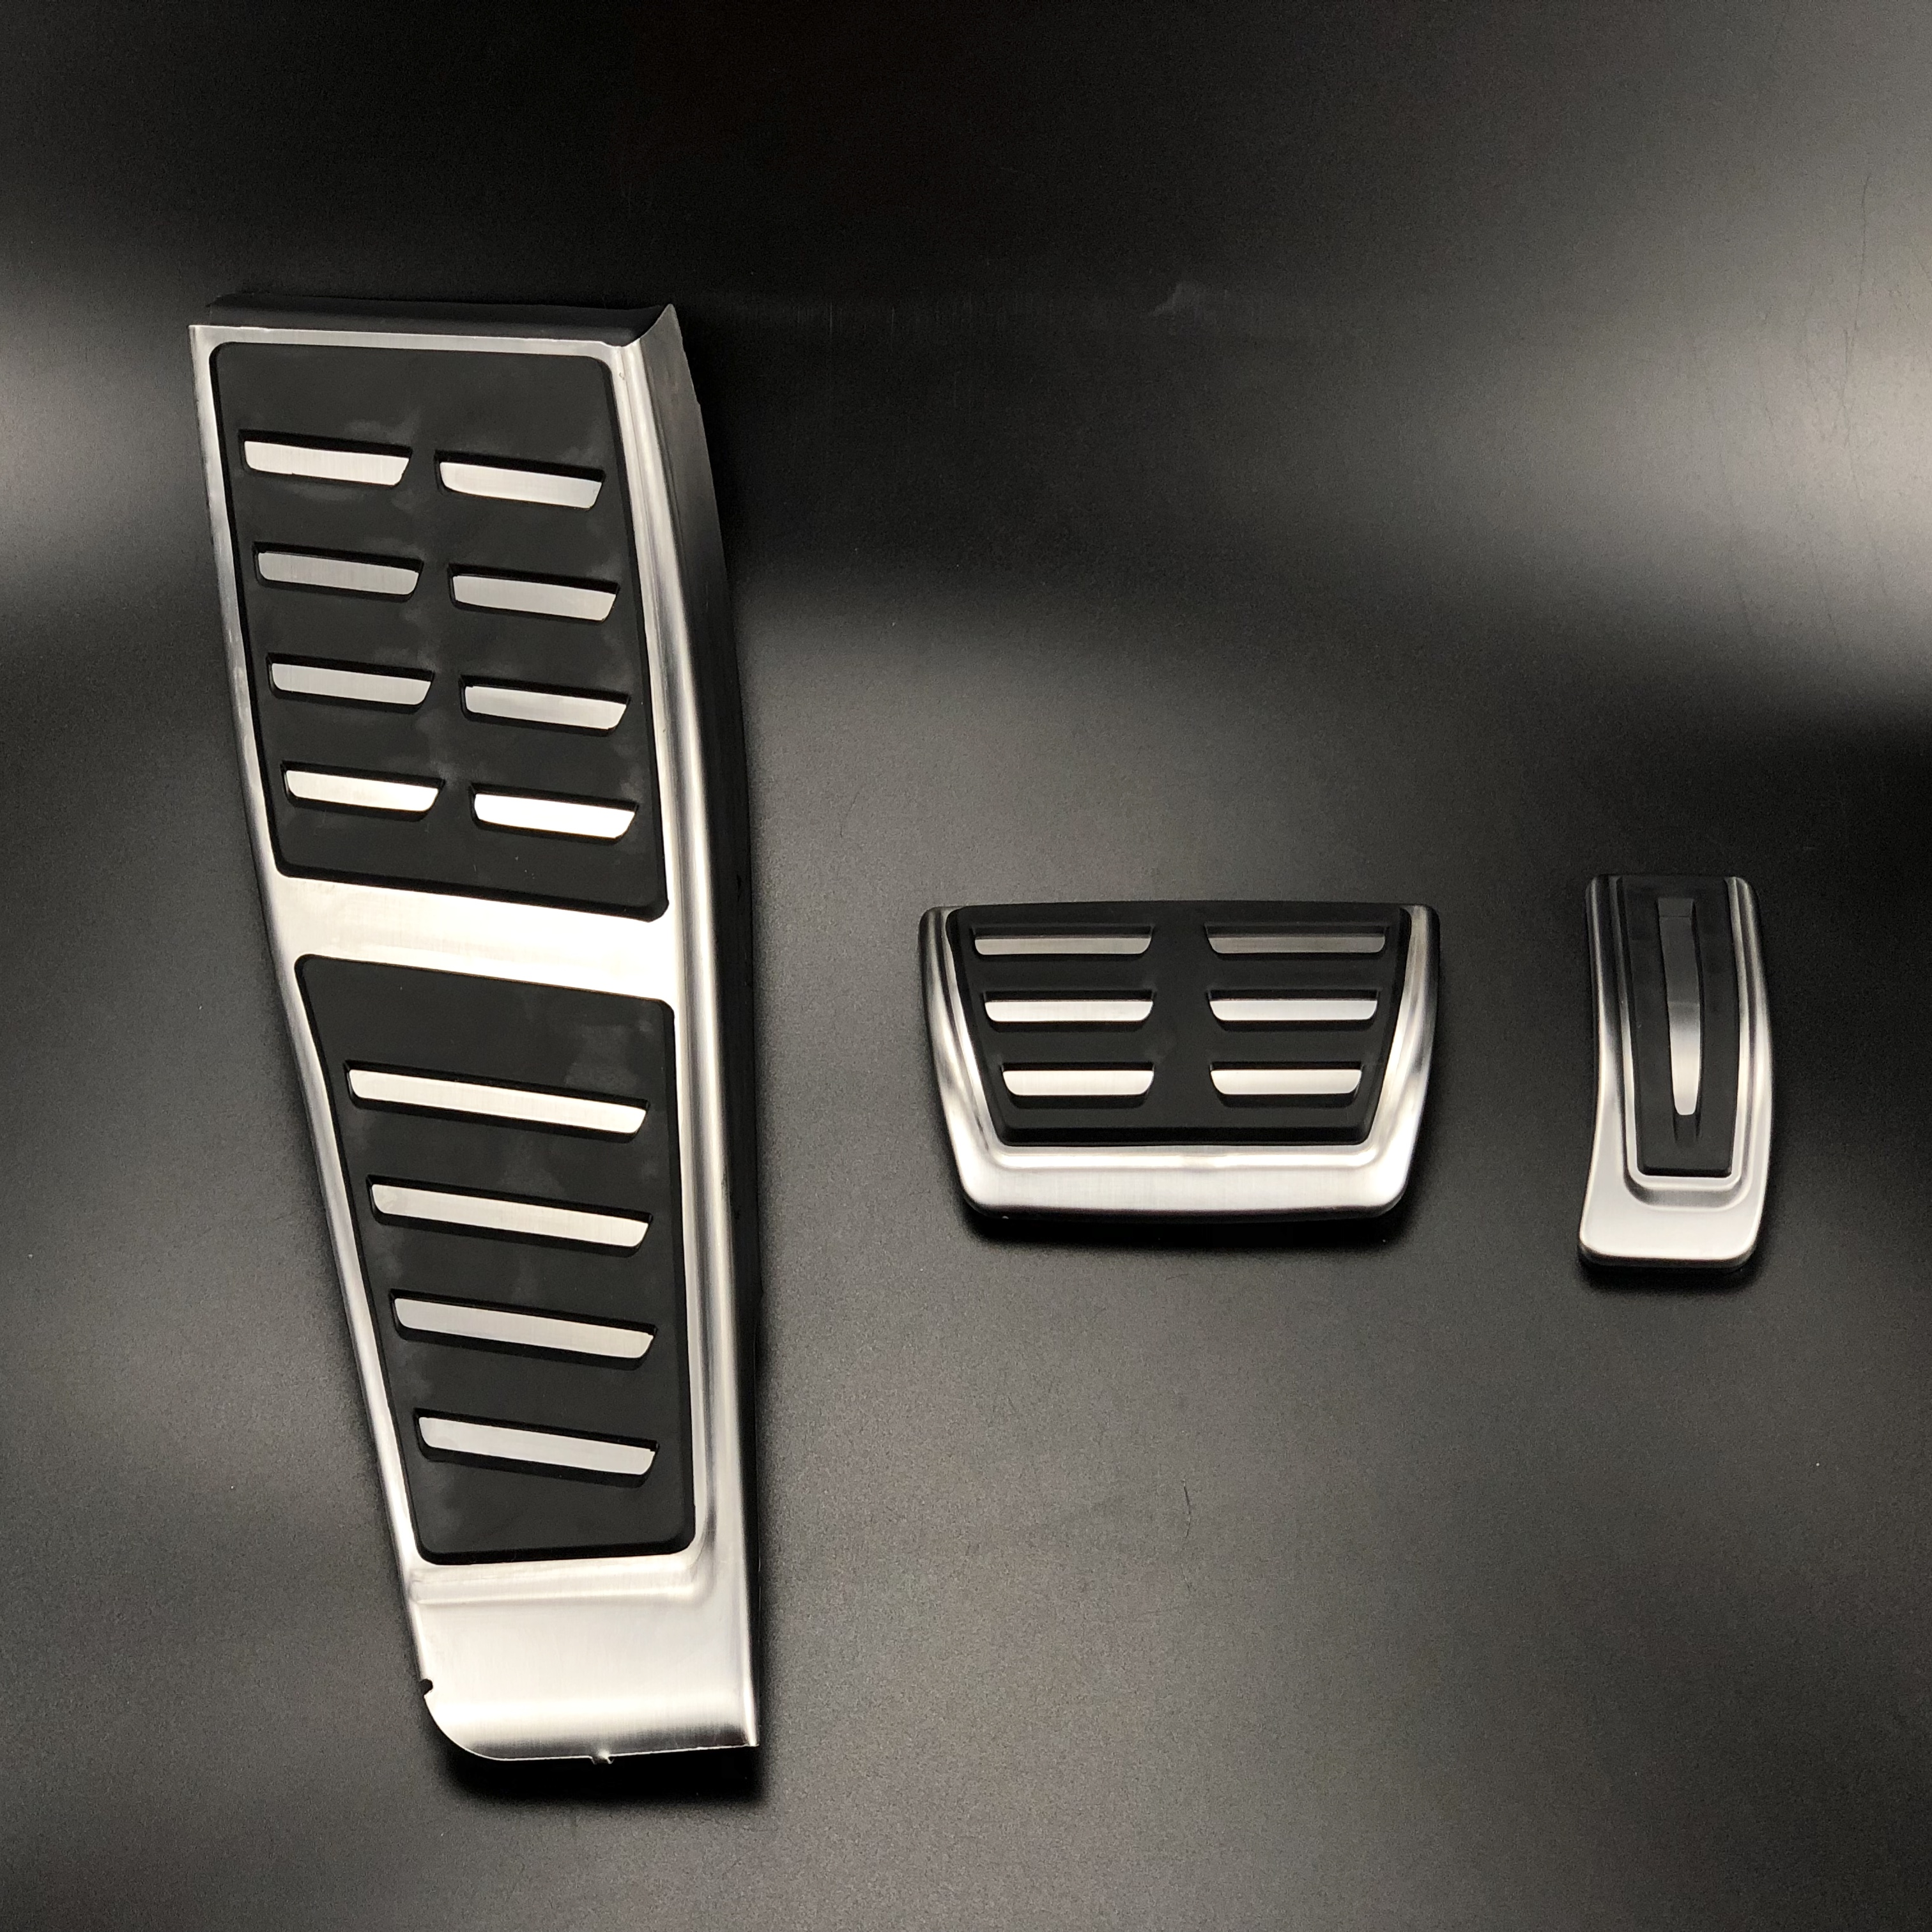 OEM Audi A4 S4 RS4 B8 Aluminium Sport Pedal and Dead Pedal only for LHD cars